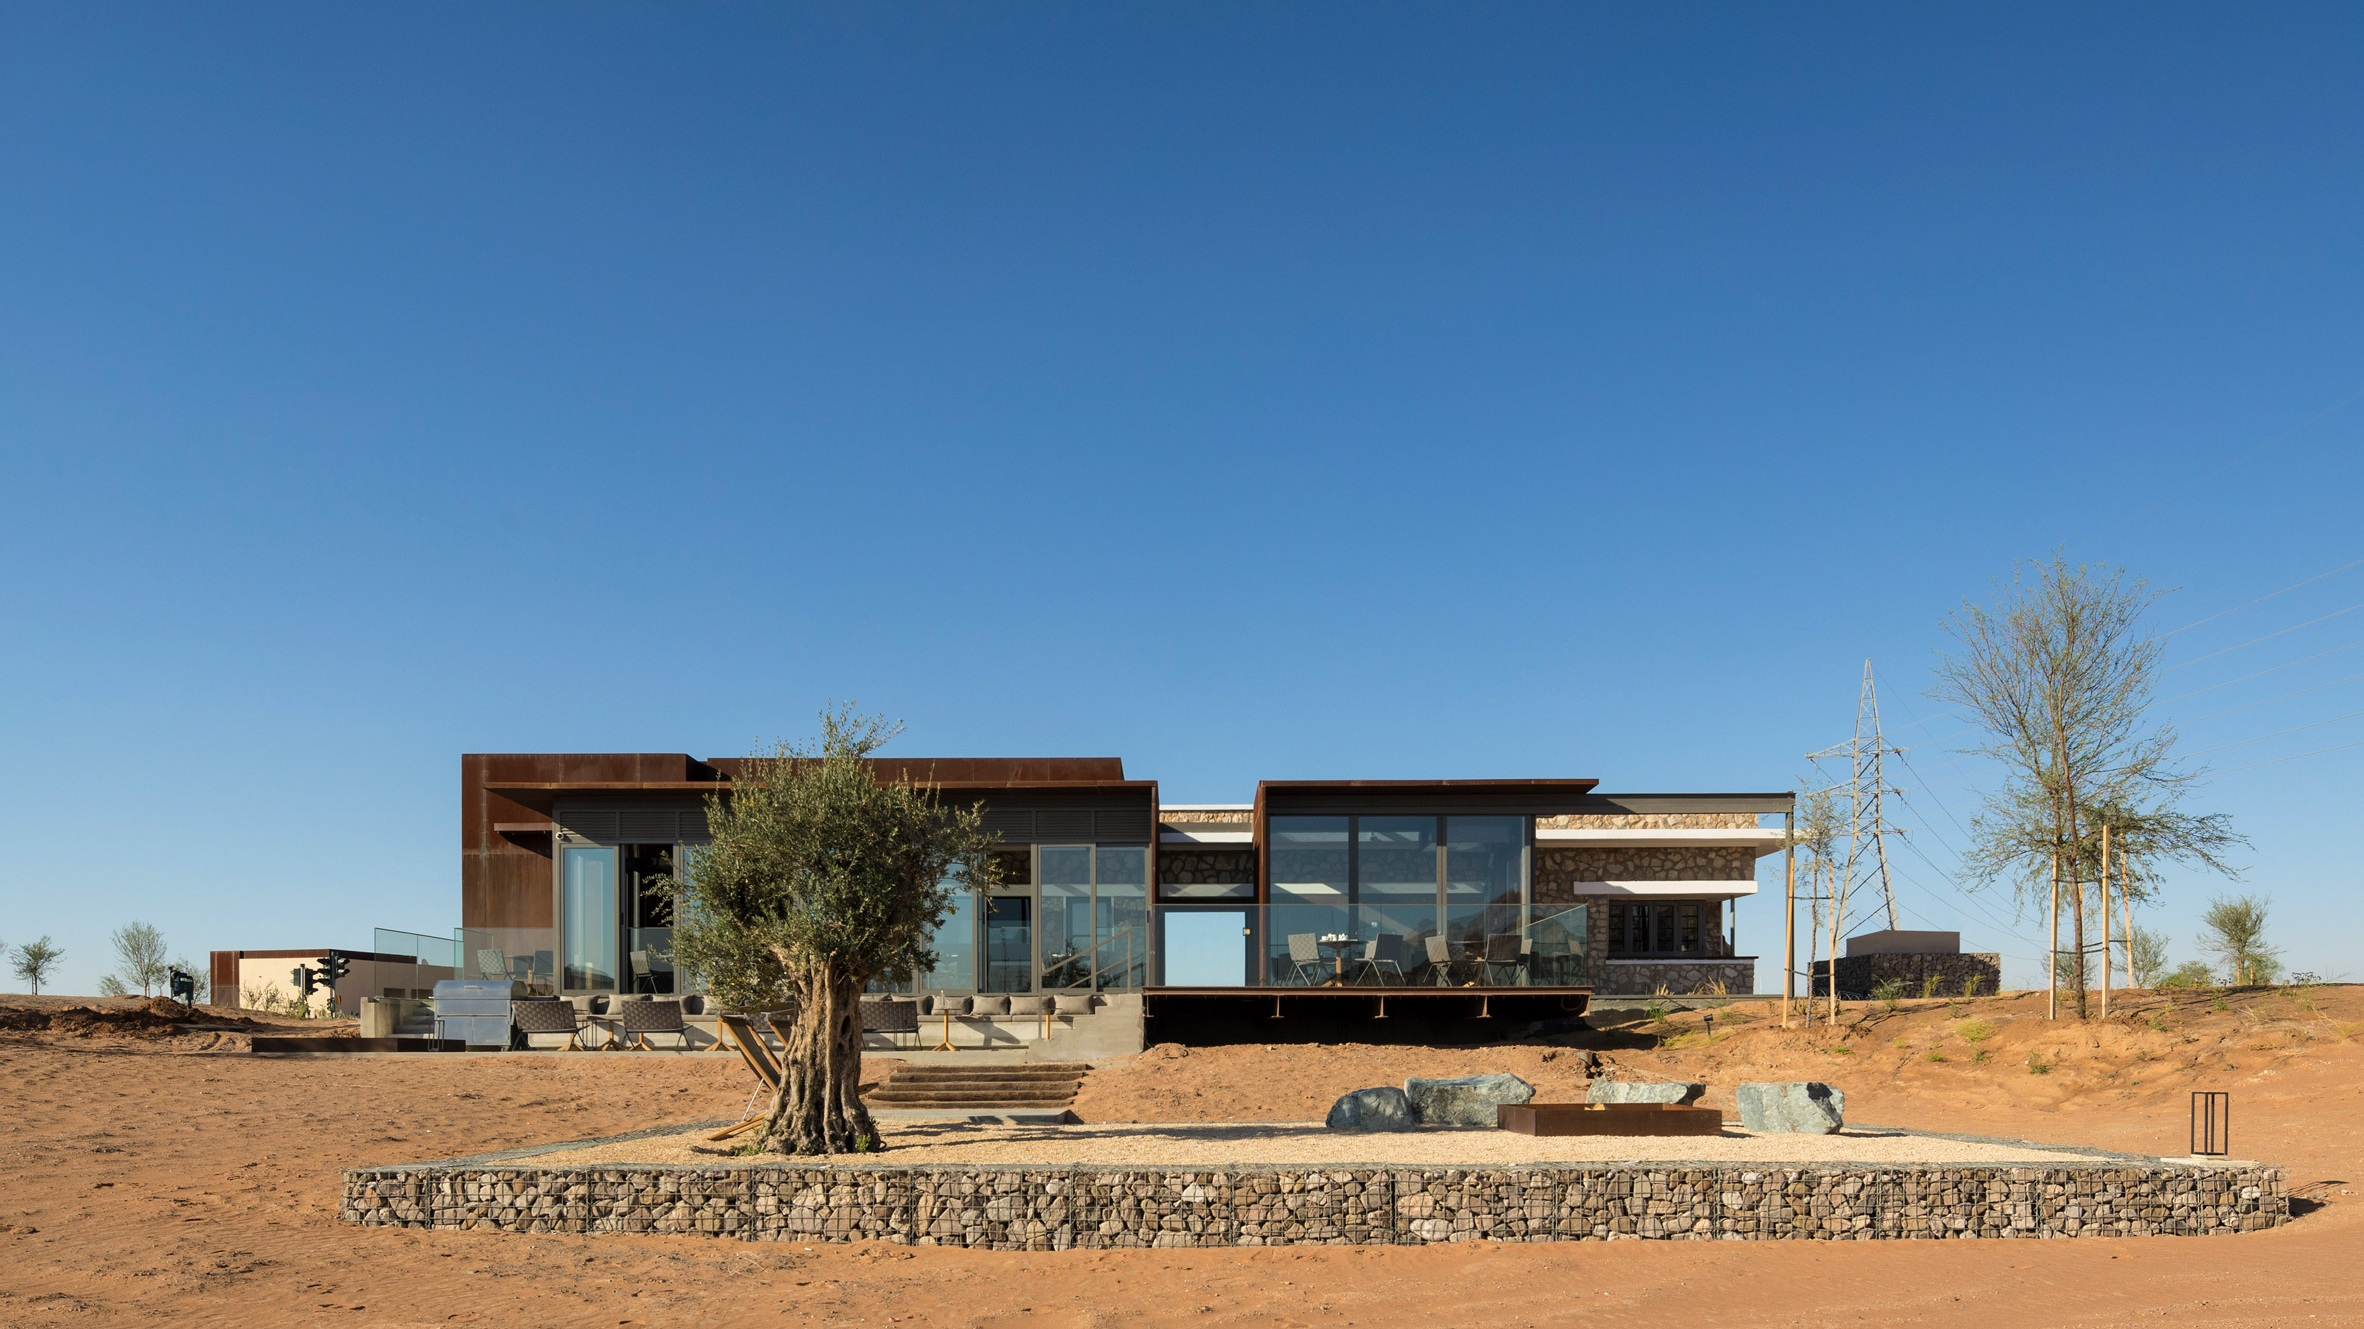 al-faya-lodge-anarchitects-architecture-photography-fernando-guerra-_dezeen_2364_col_19.jpg